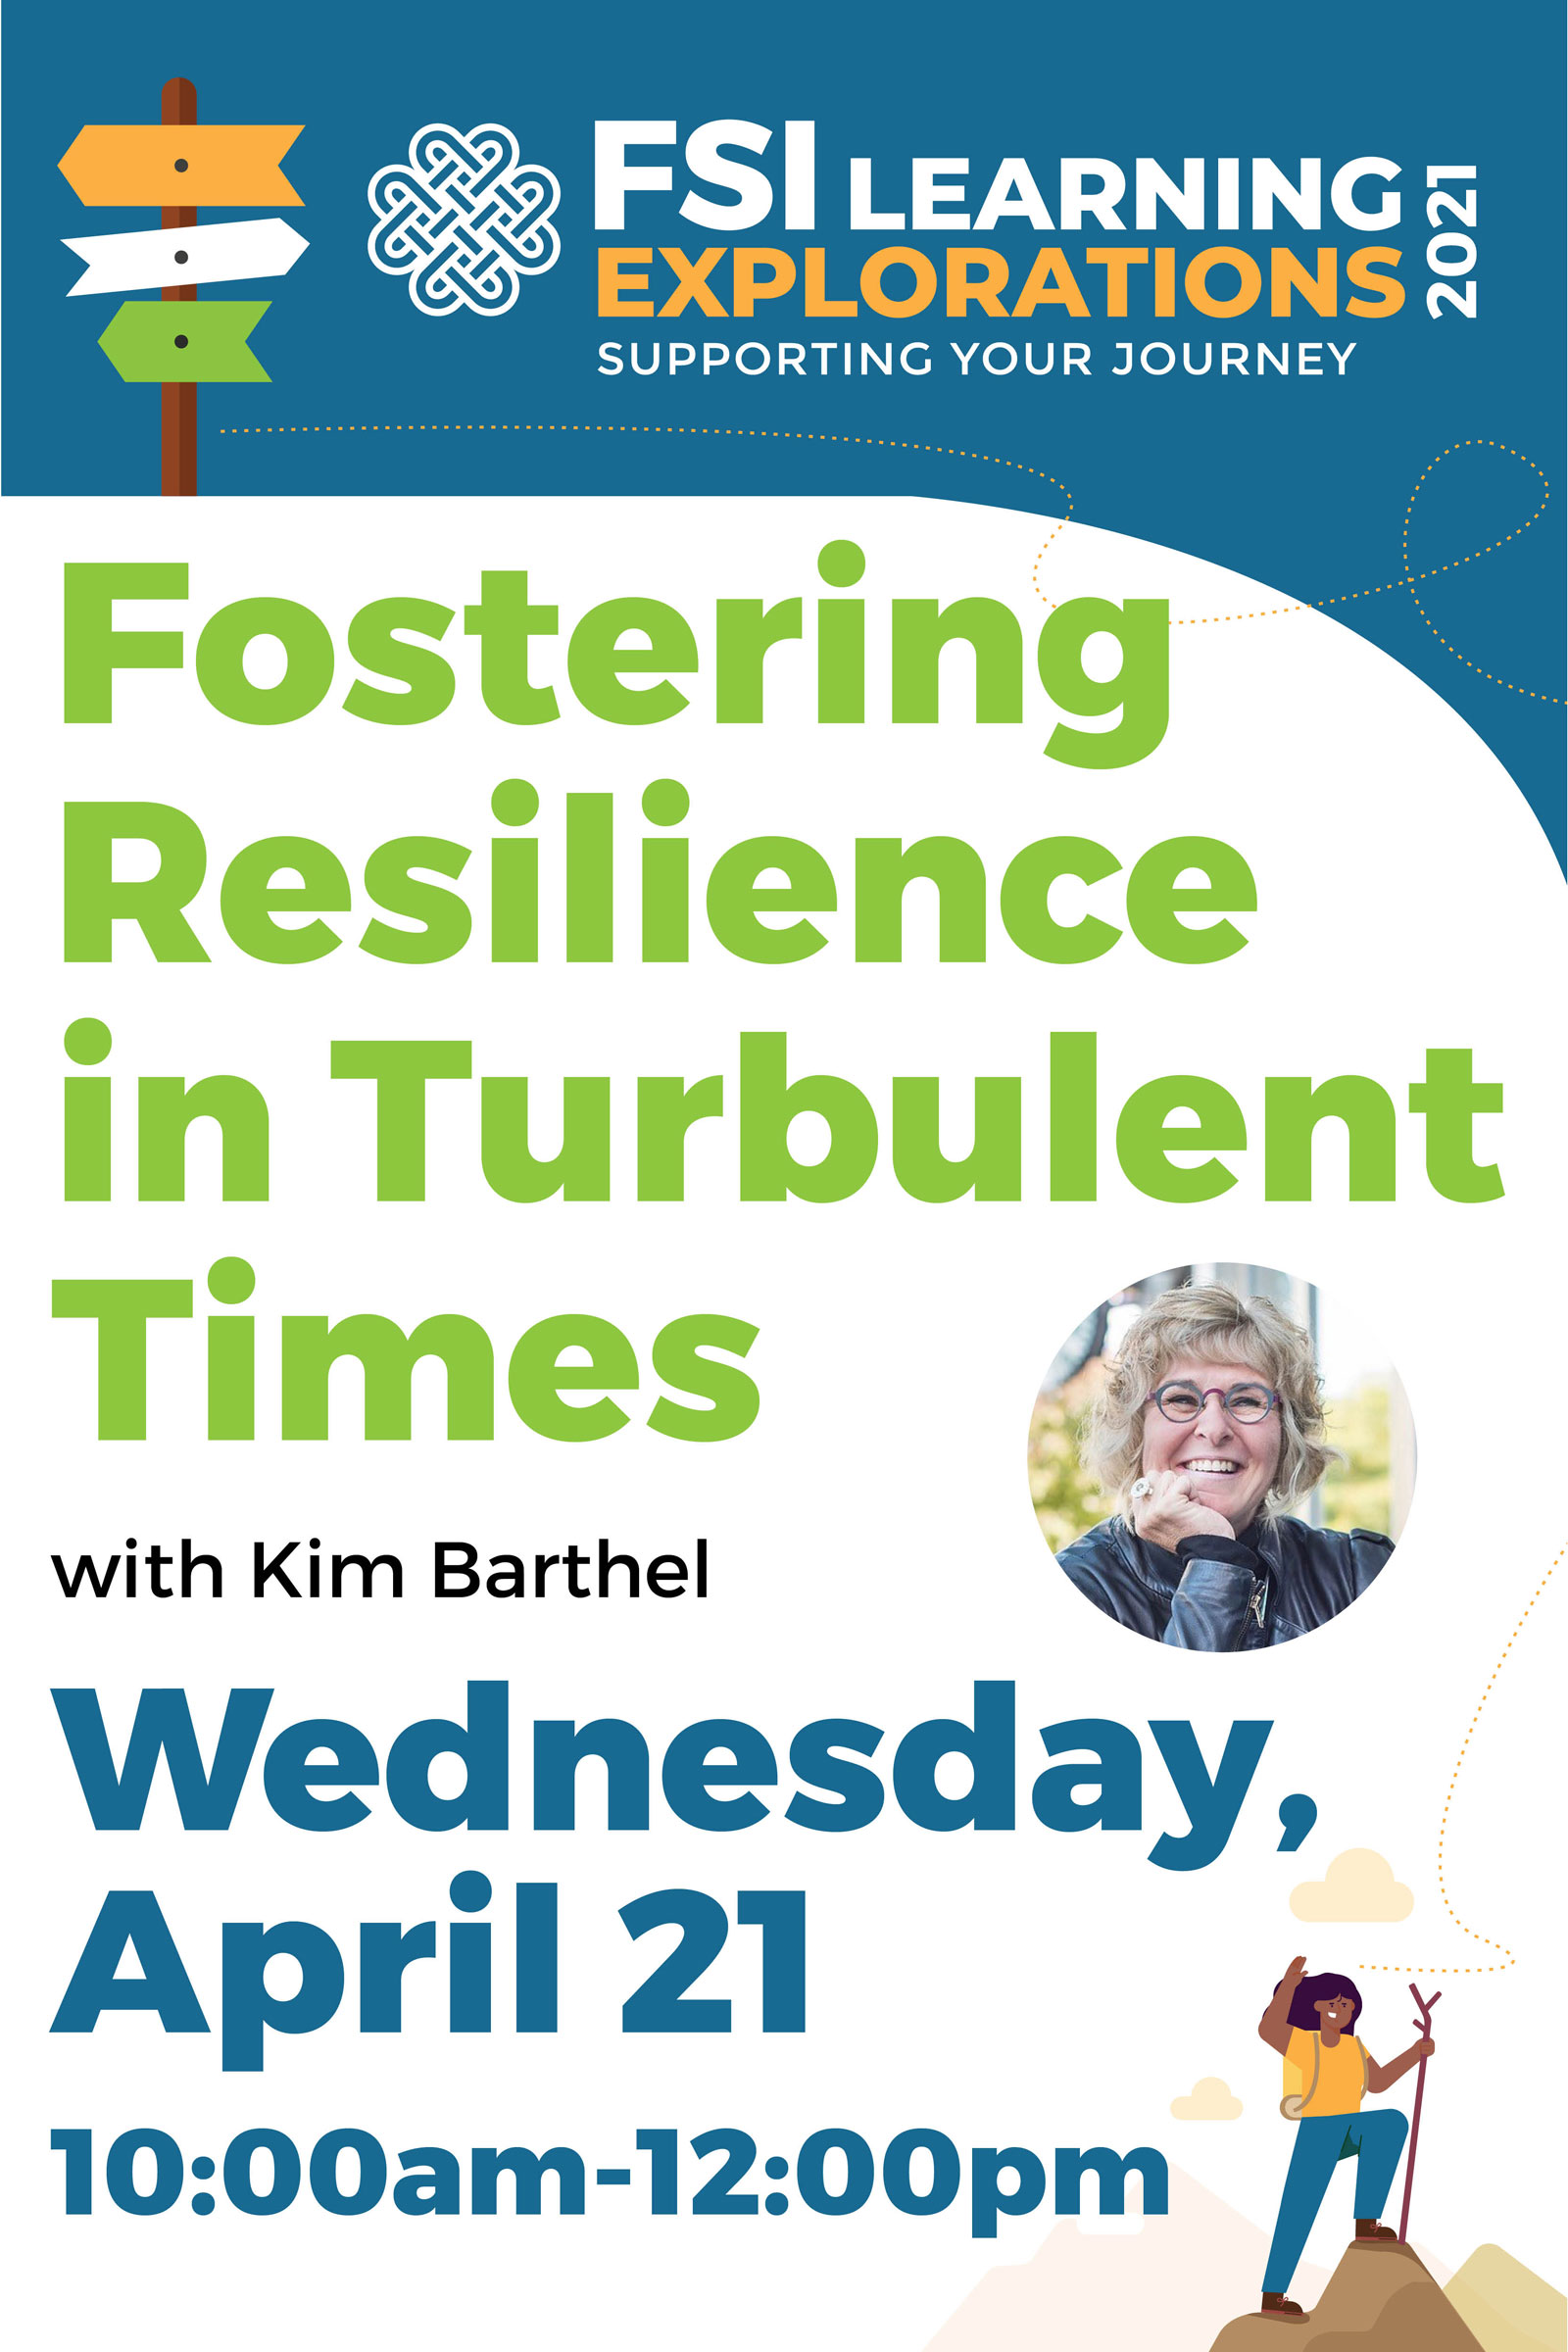 FSI Learning Explorations - Fostering Reslience in Turbulent Times